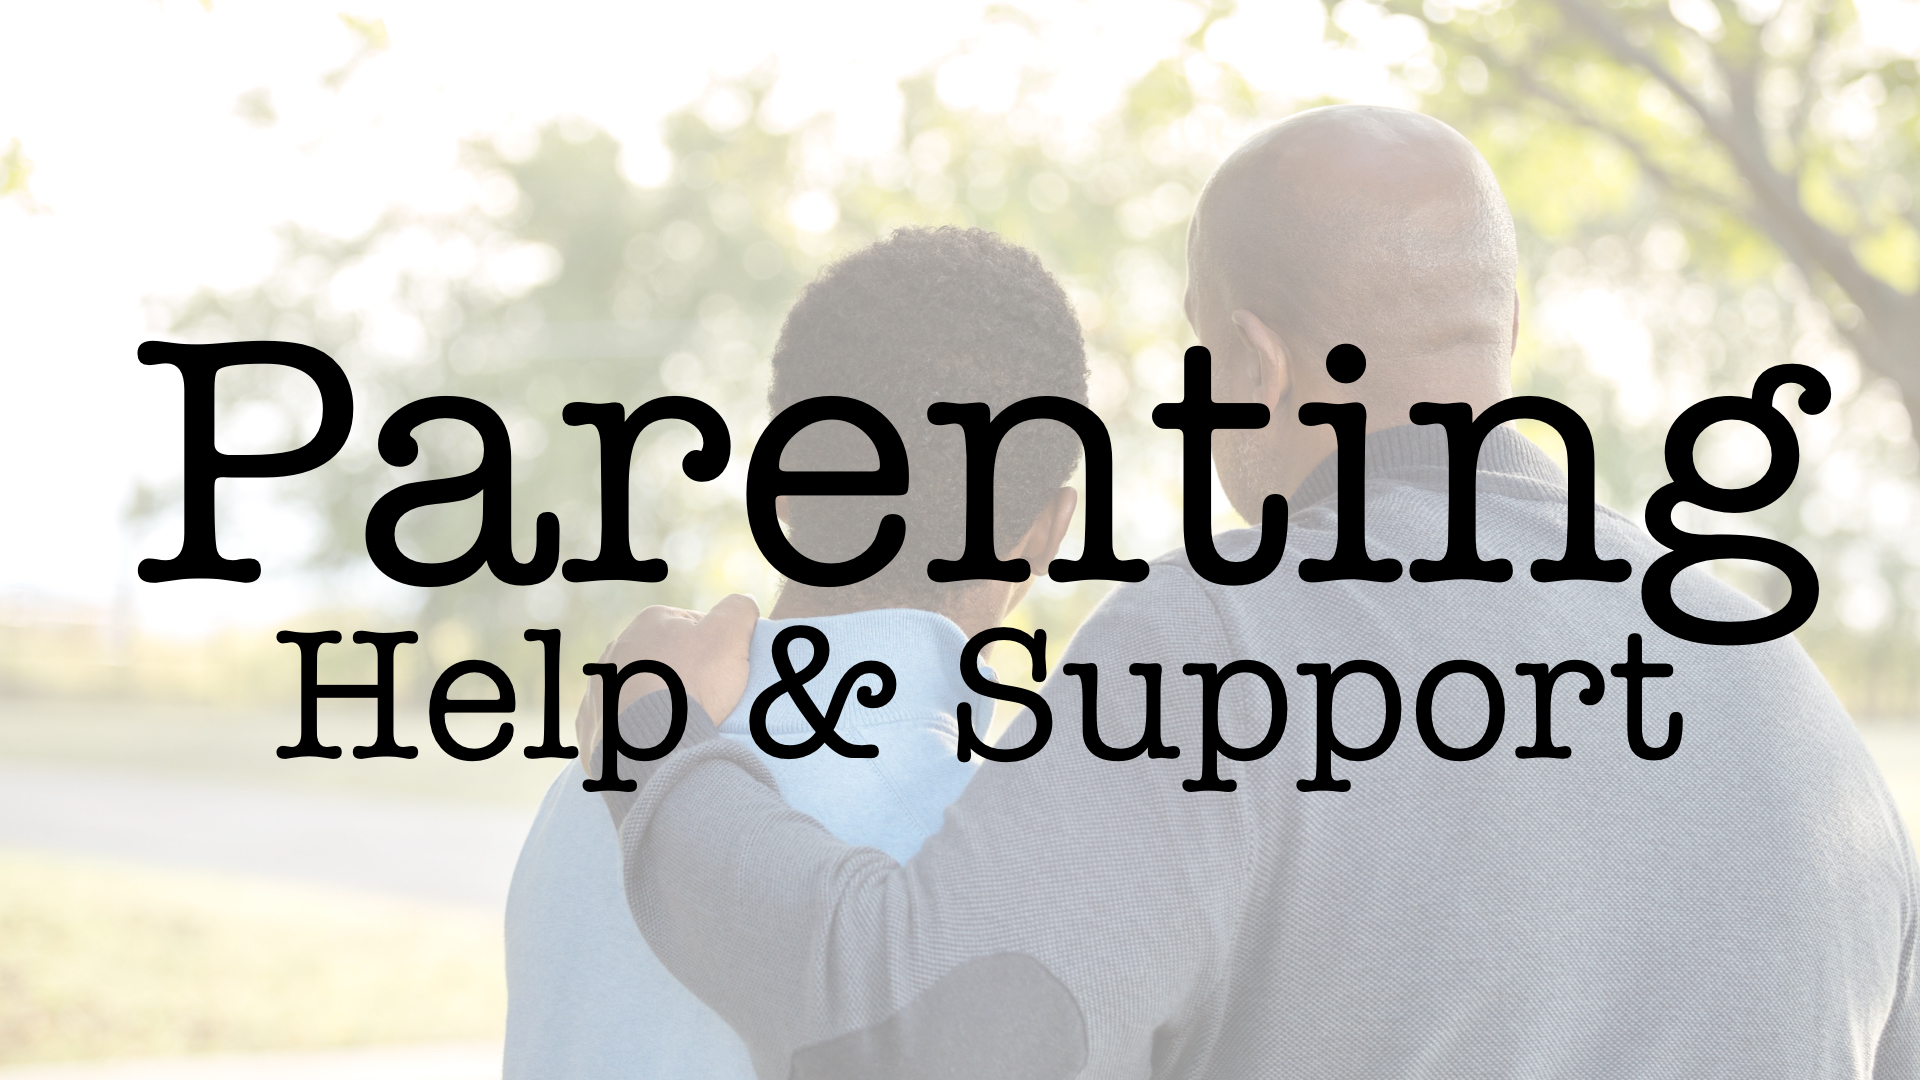 parenting help and support.001.jpeg